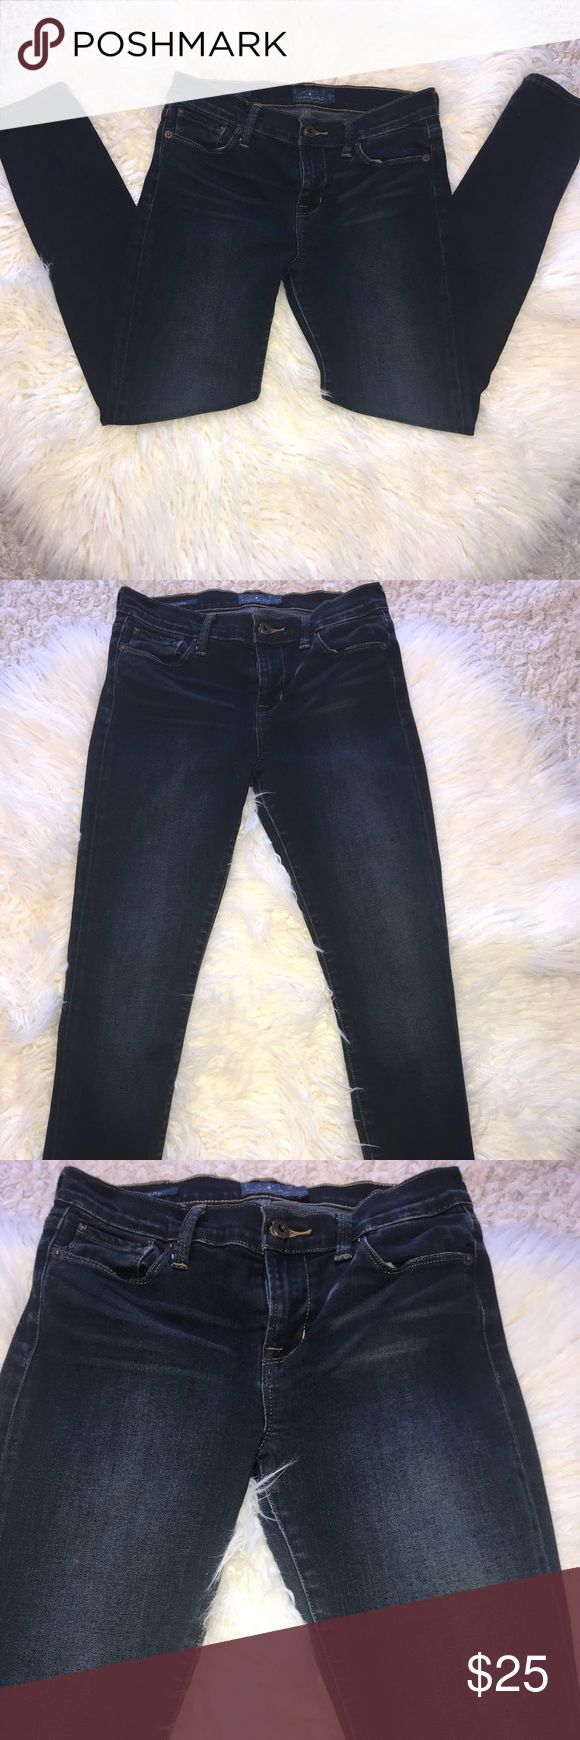 Lucky Brand Women's Brooke Skinny jeans size 4/27A Used. No holes, no stains, no peeling. Faded look, bought like that. Style 7w12860. This is NOT an outlet item.  Stock#40 Lucky Brand Jeans Skinny